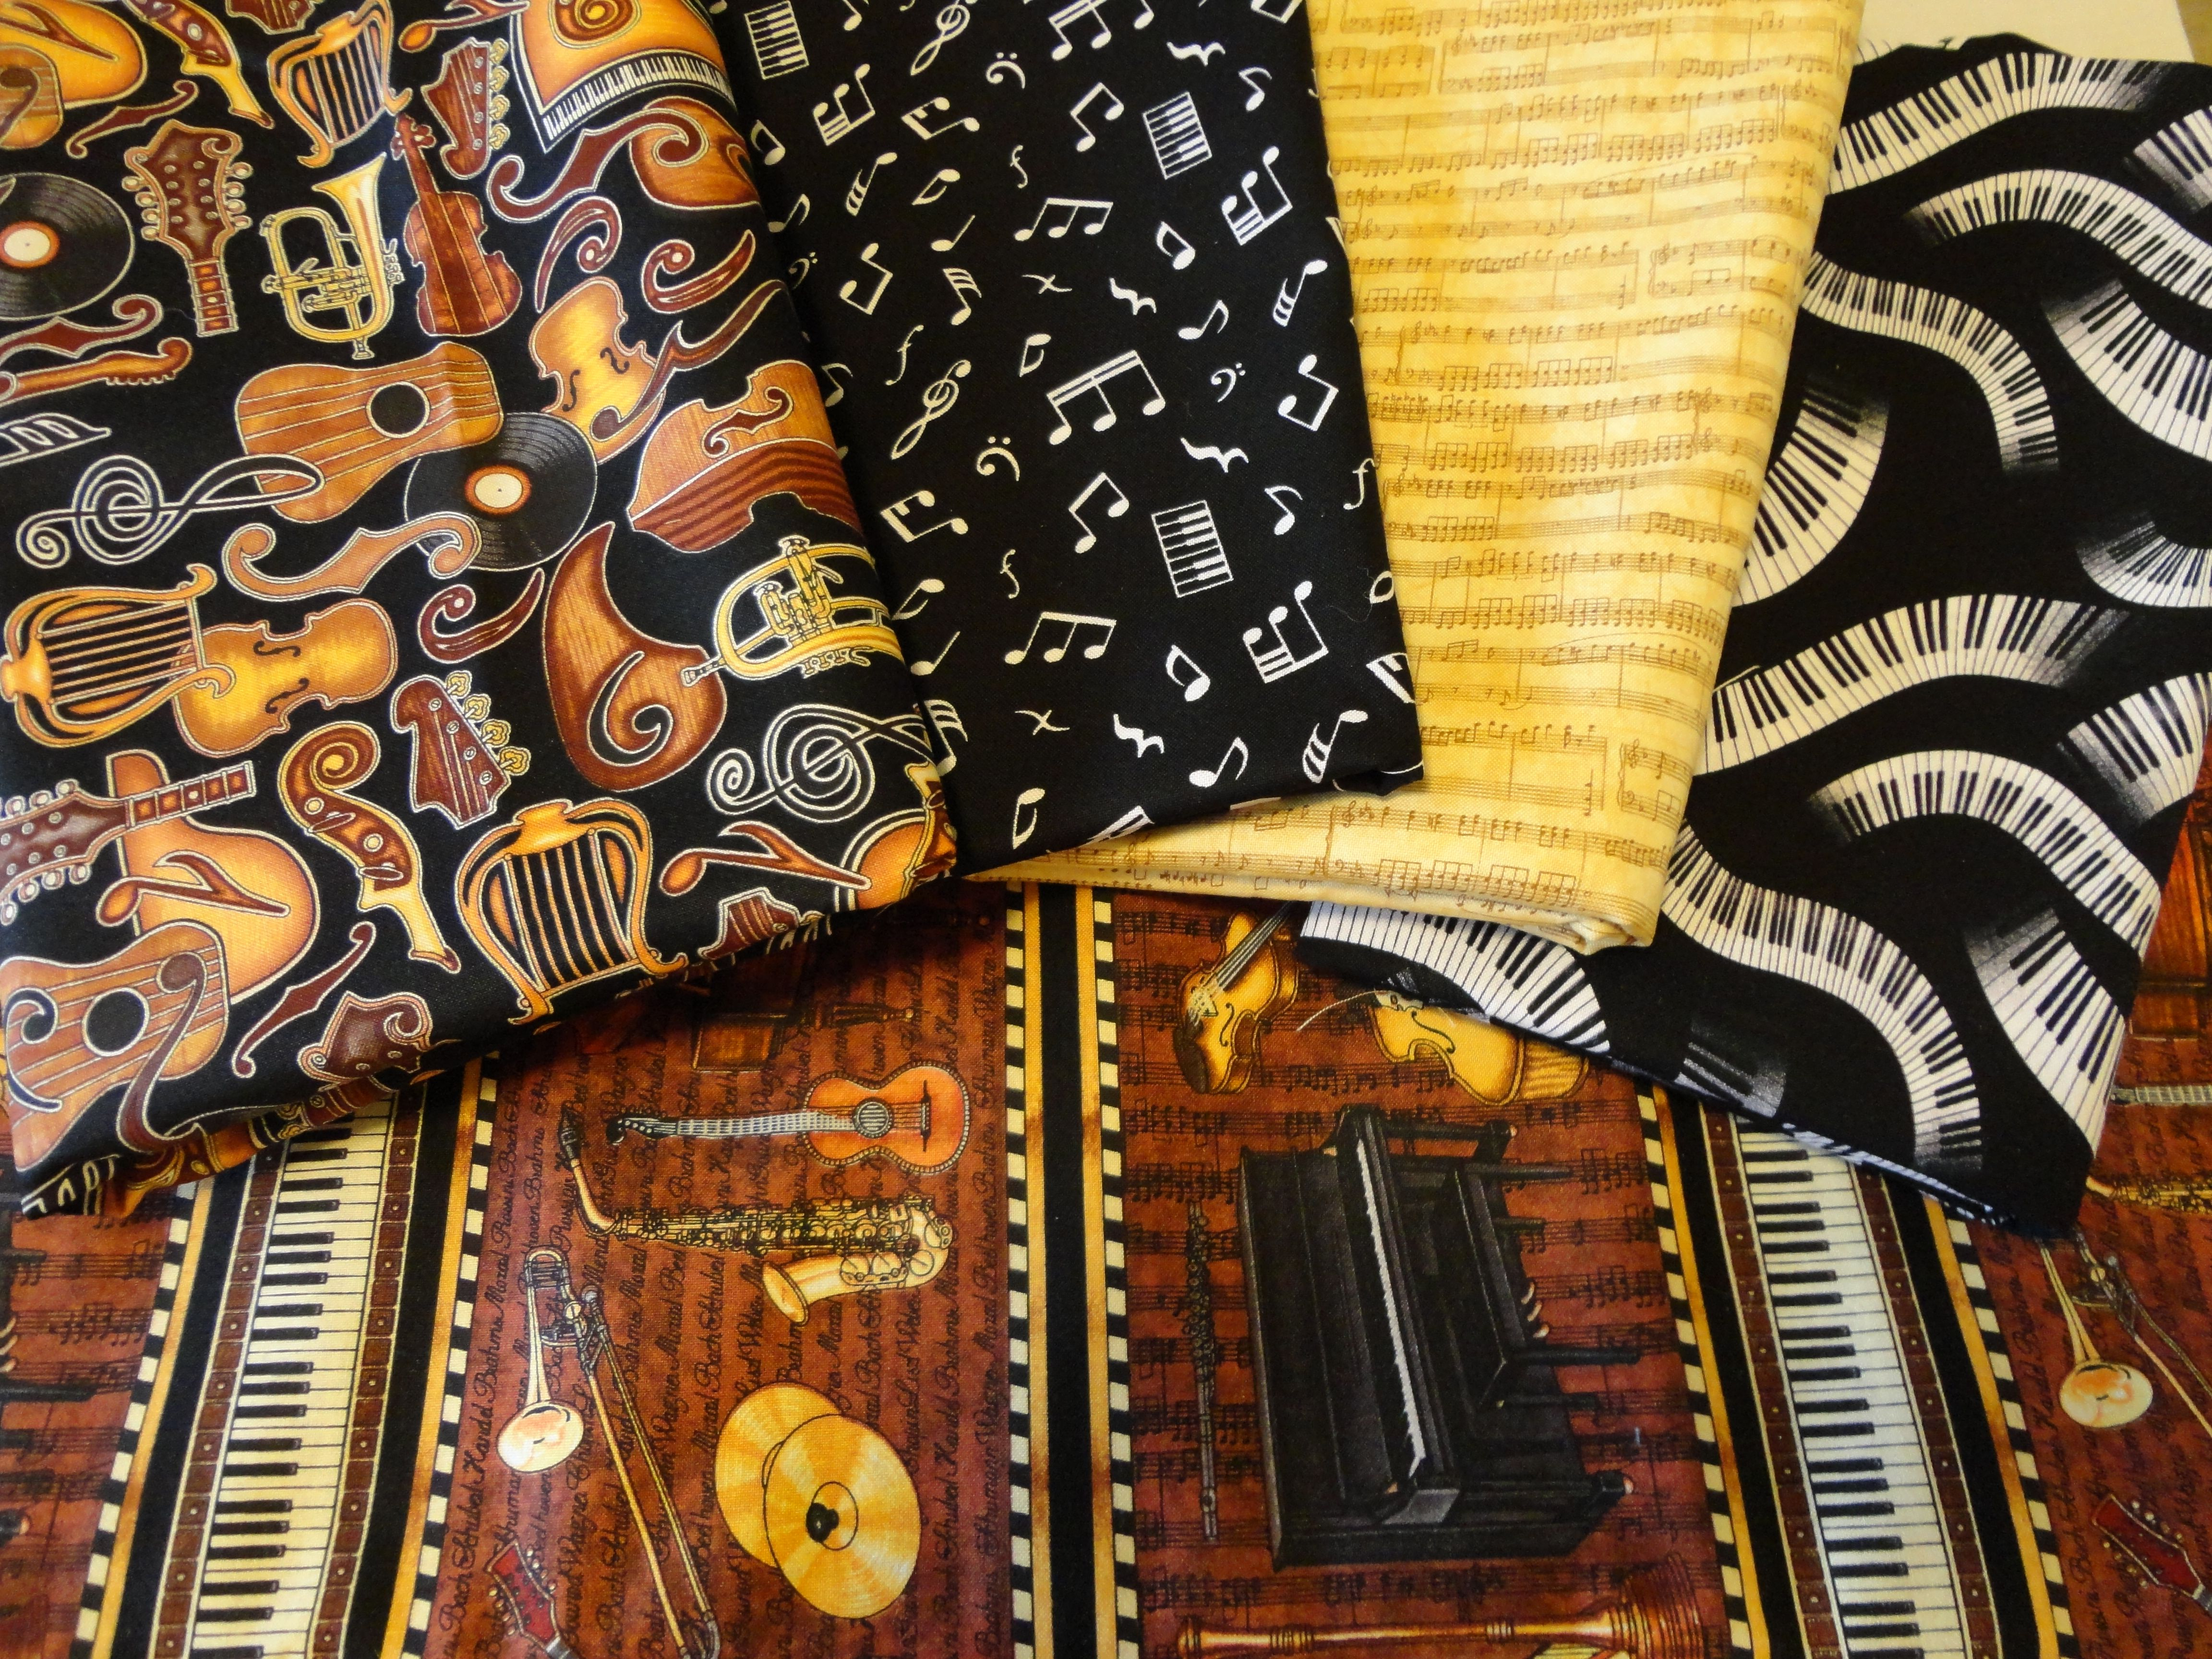 Google themes music - Musical Themed Fabric Google Search